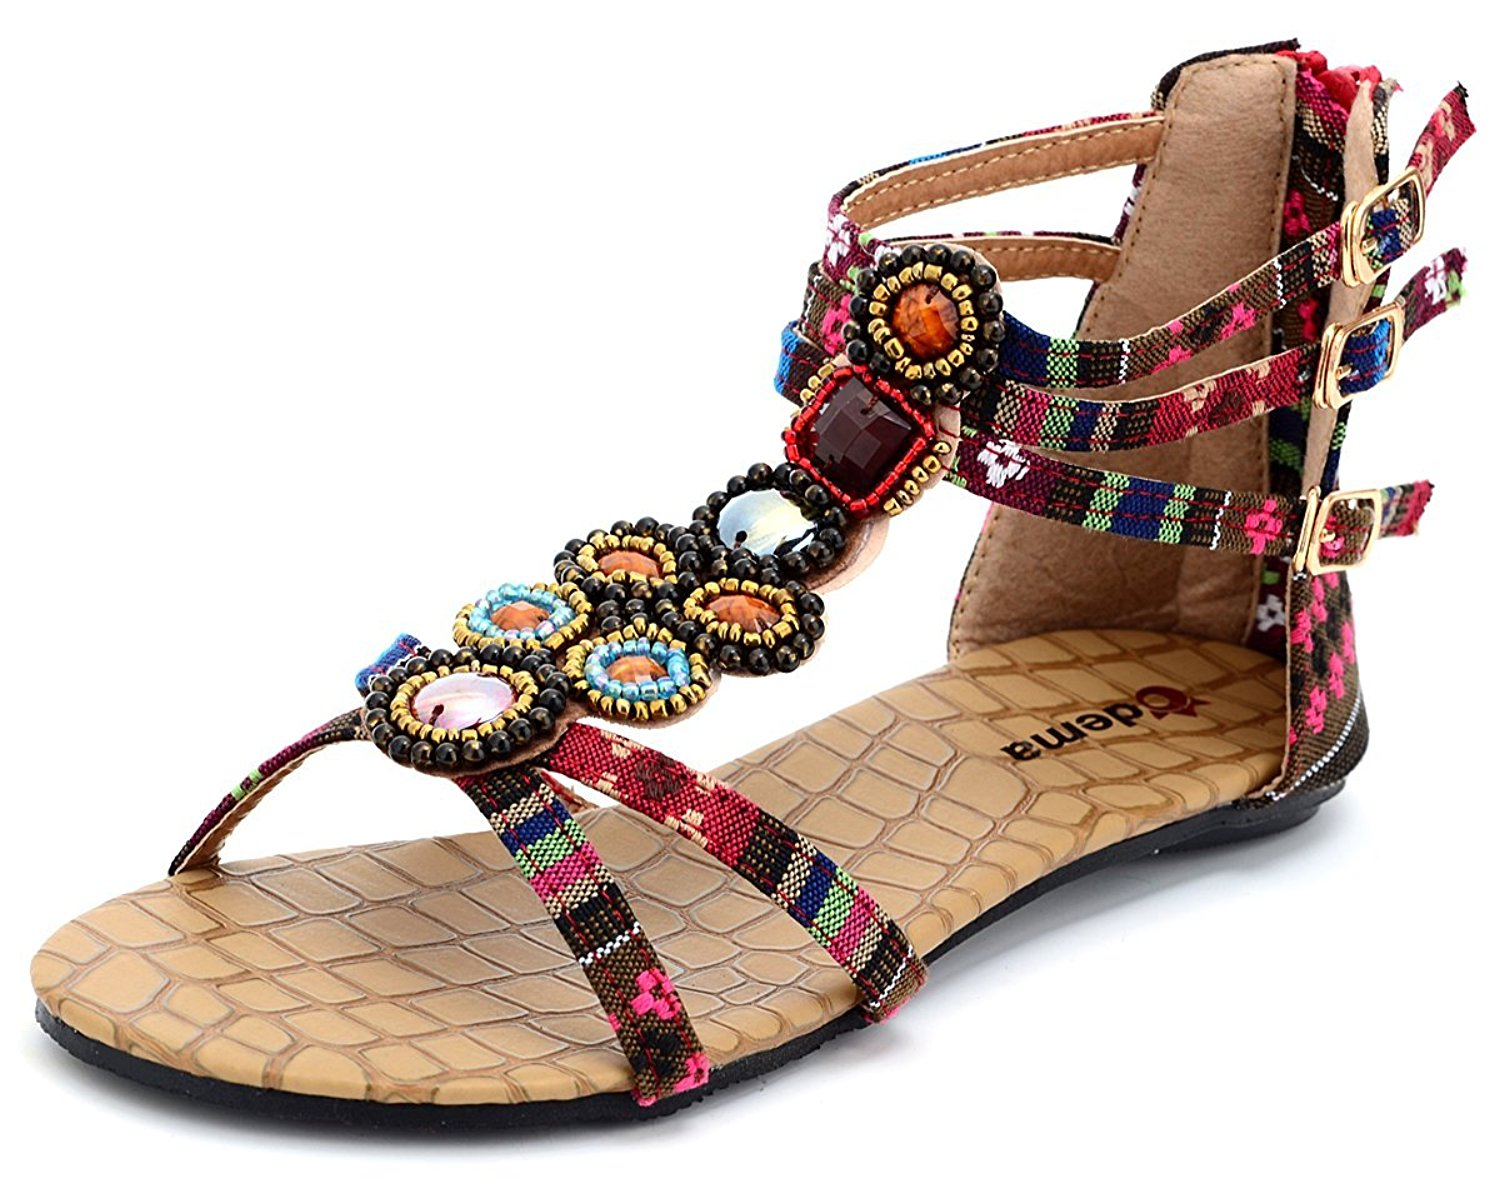 67a810e86 Get Quotations · Odema Womens Flat Sandals Summer Bohemian Beaded Beach  Thong Dressy Sandals